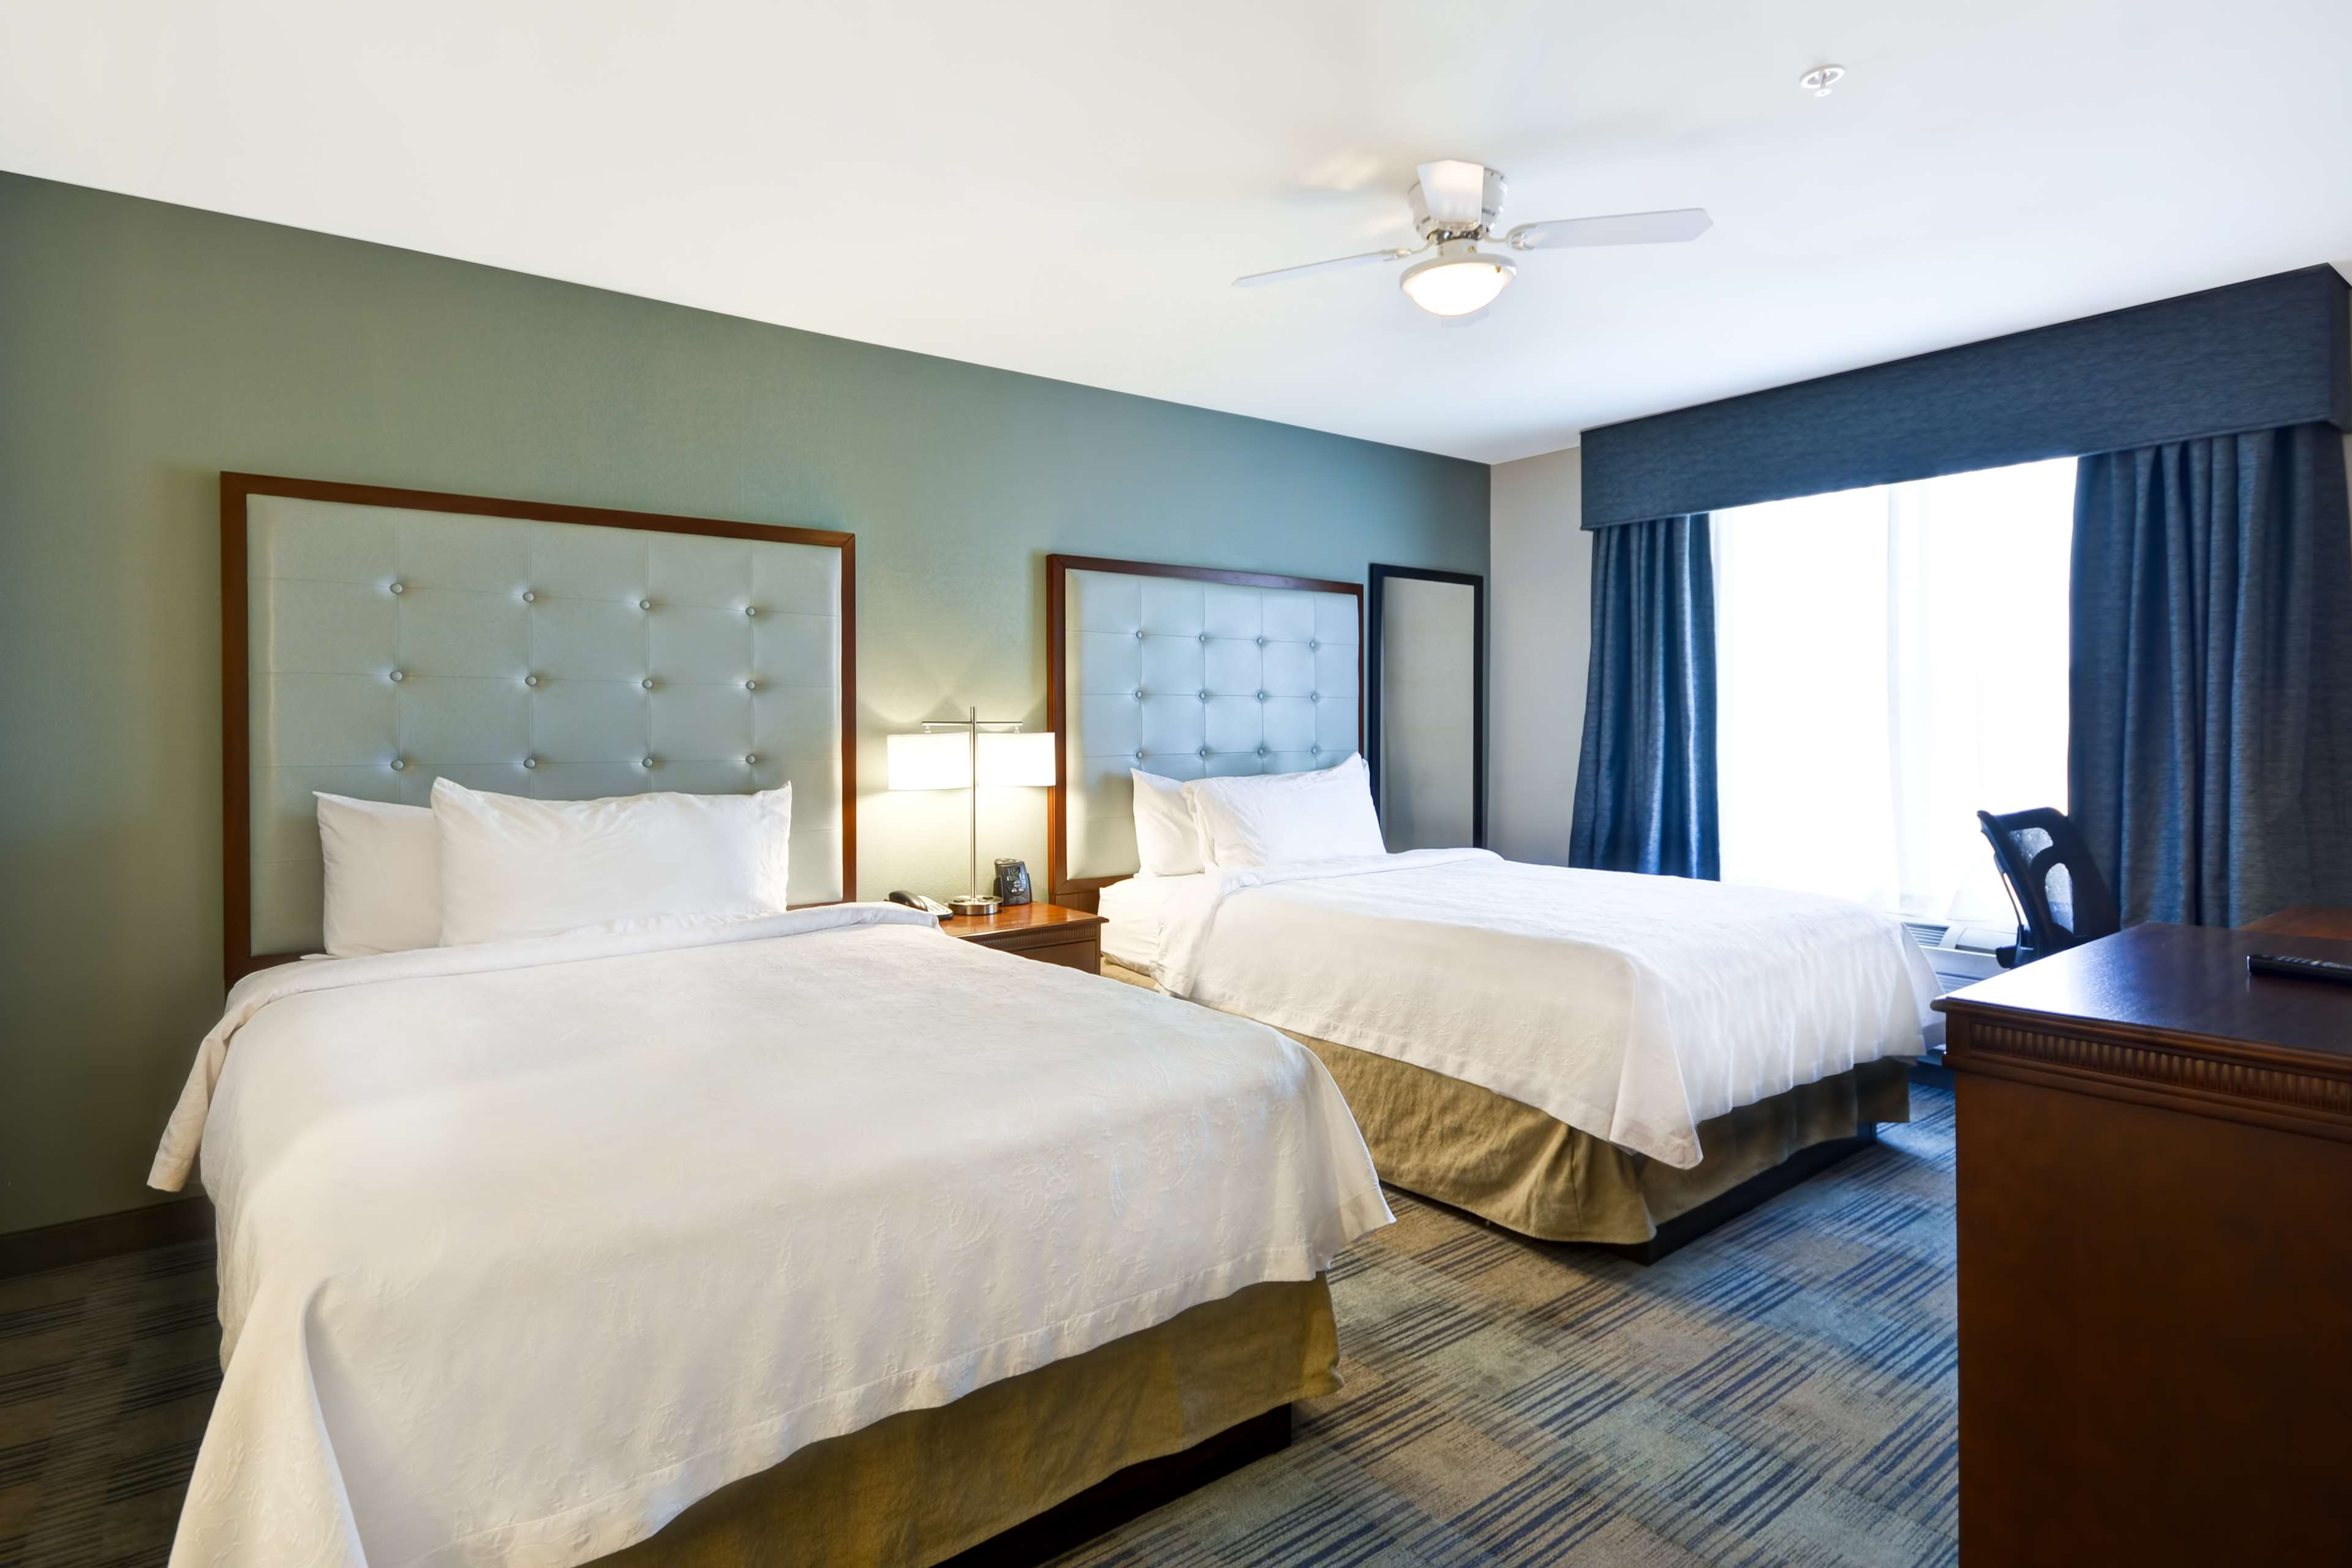 Homewood Suites by Hilton Wilmington/Mayfaire, NC image 33